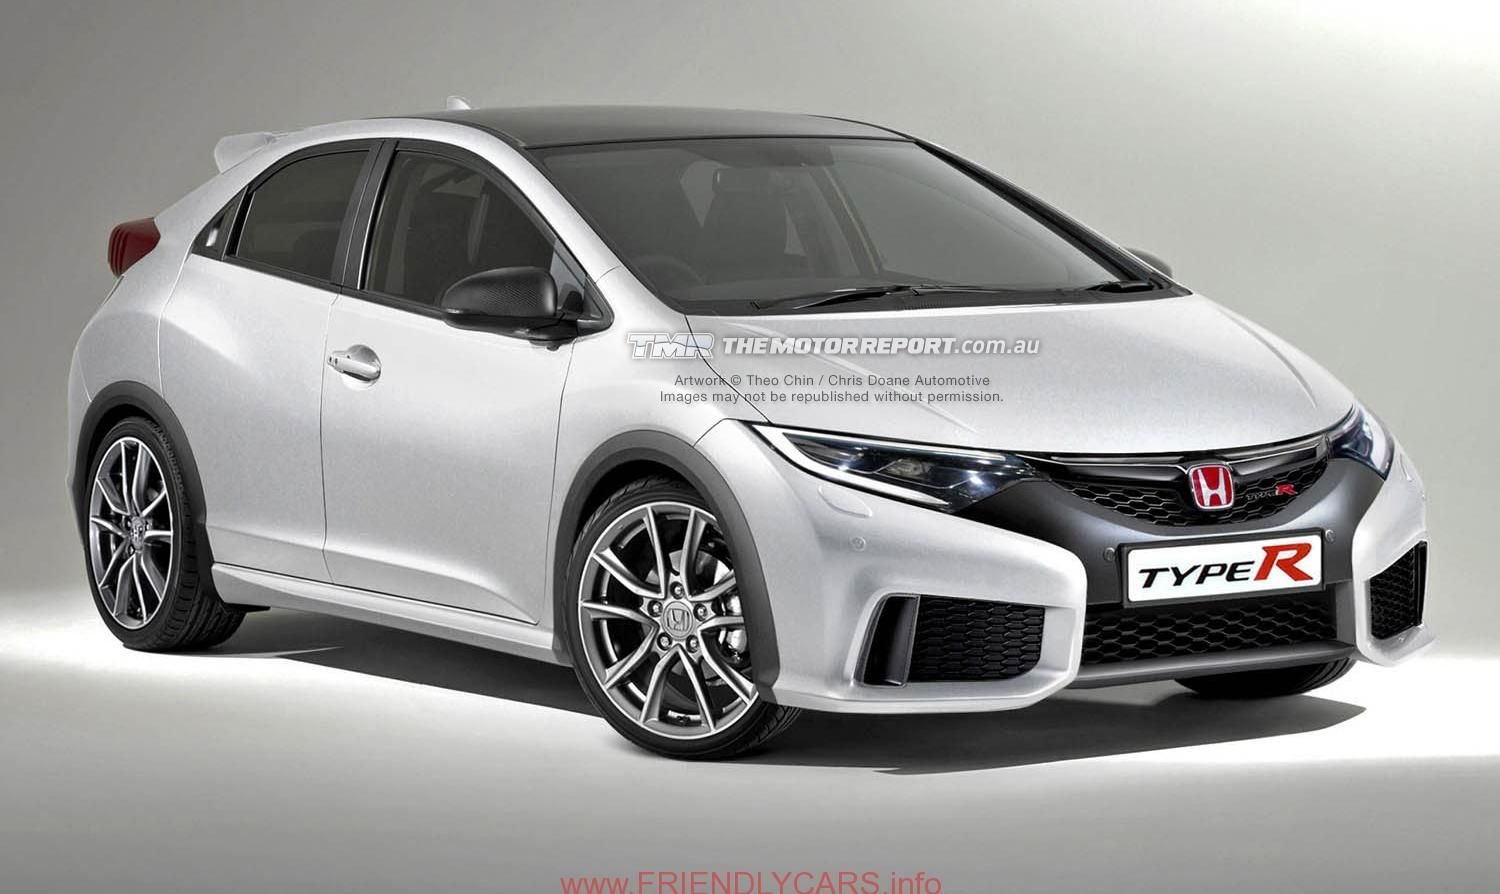 Awesome Honda Civic 2014 White 4 Door Car Images Hd 2014 Honda Civic 2 Door  The